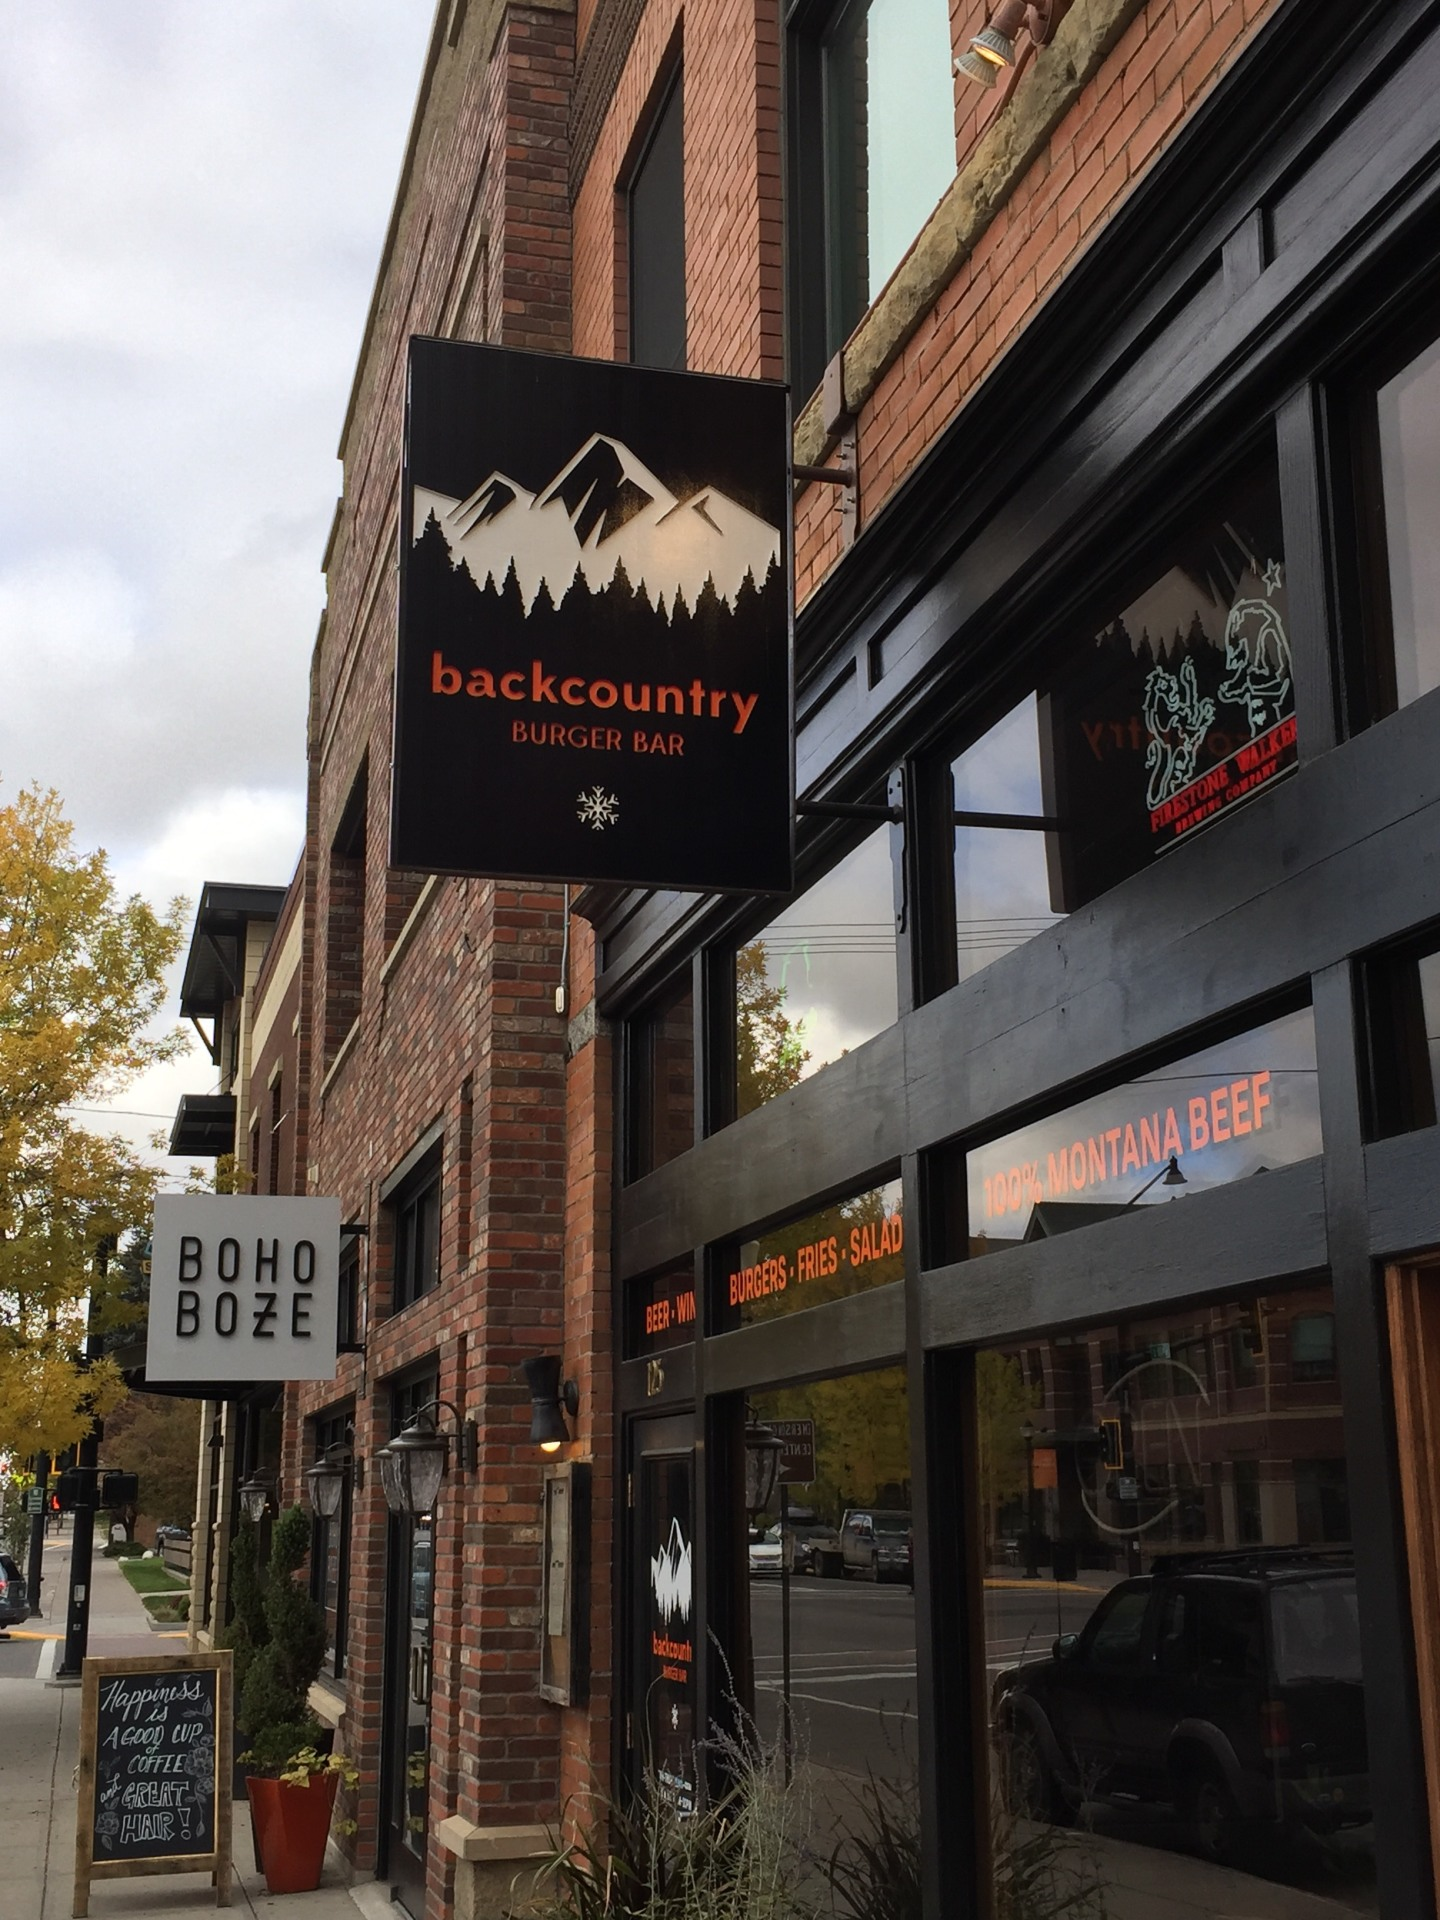 Backcountry Burger Bar